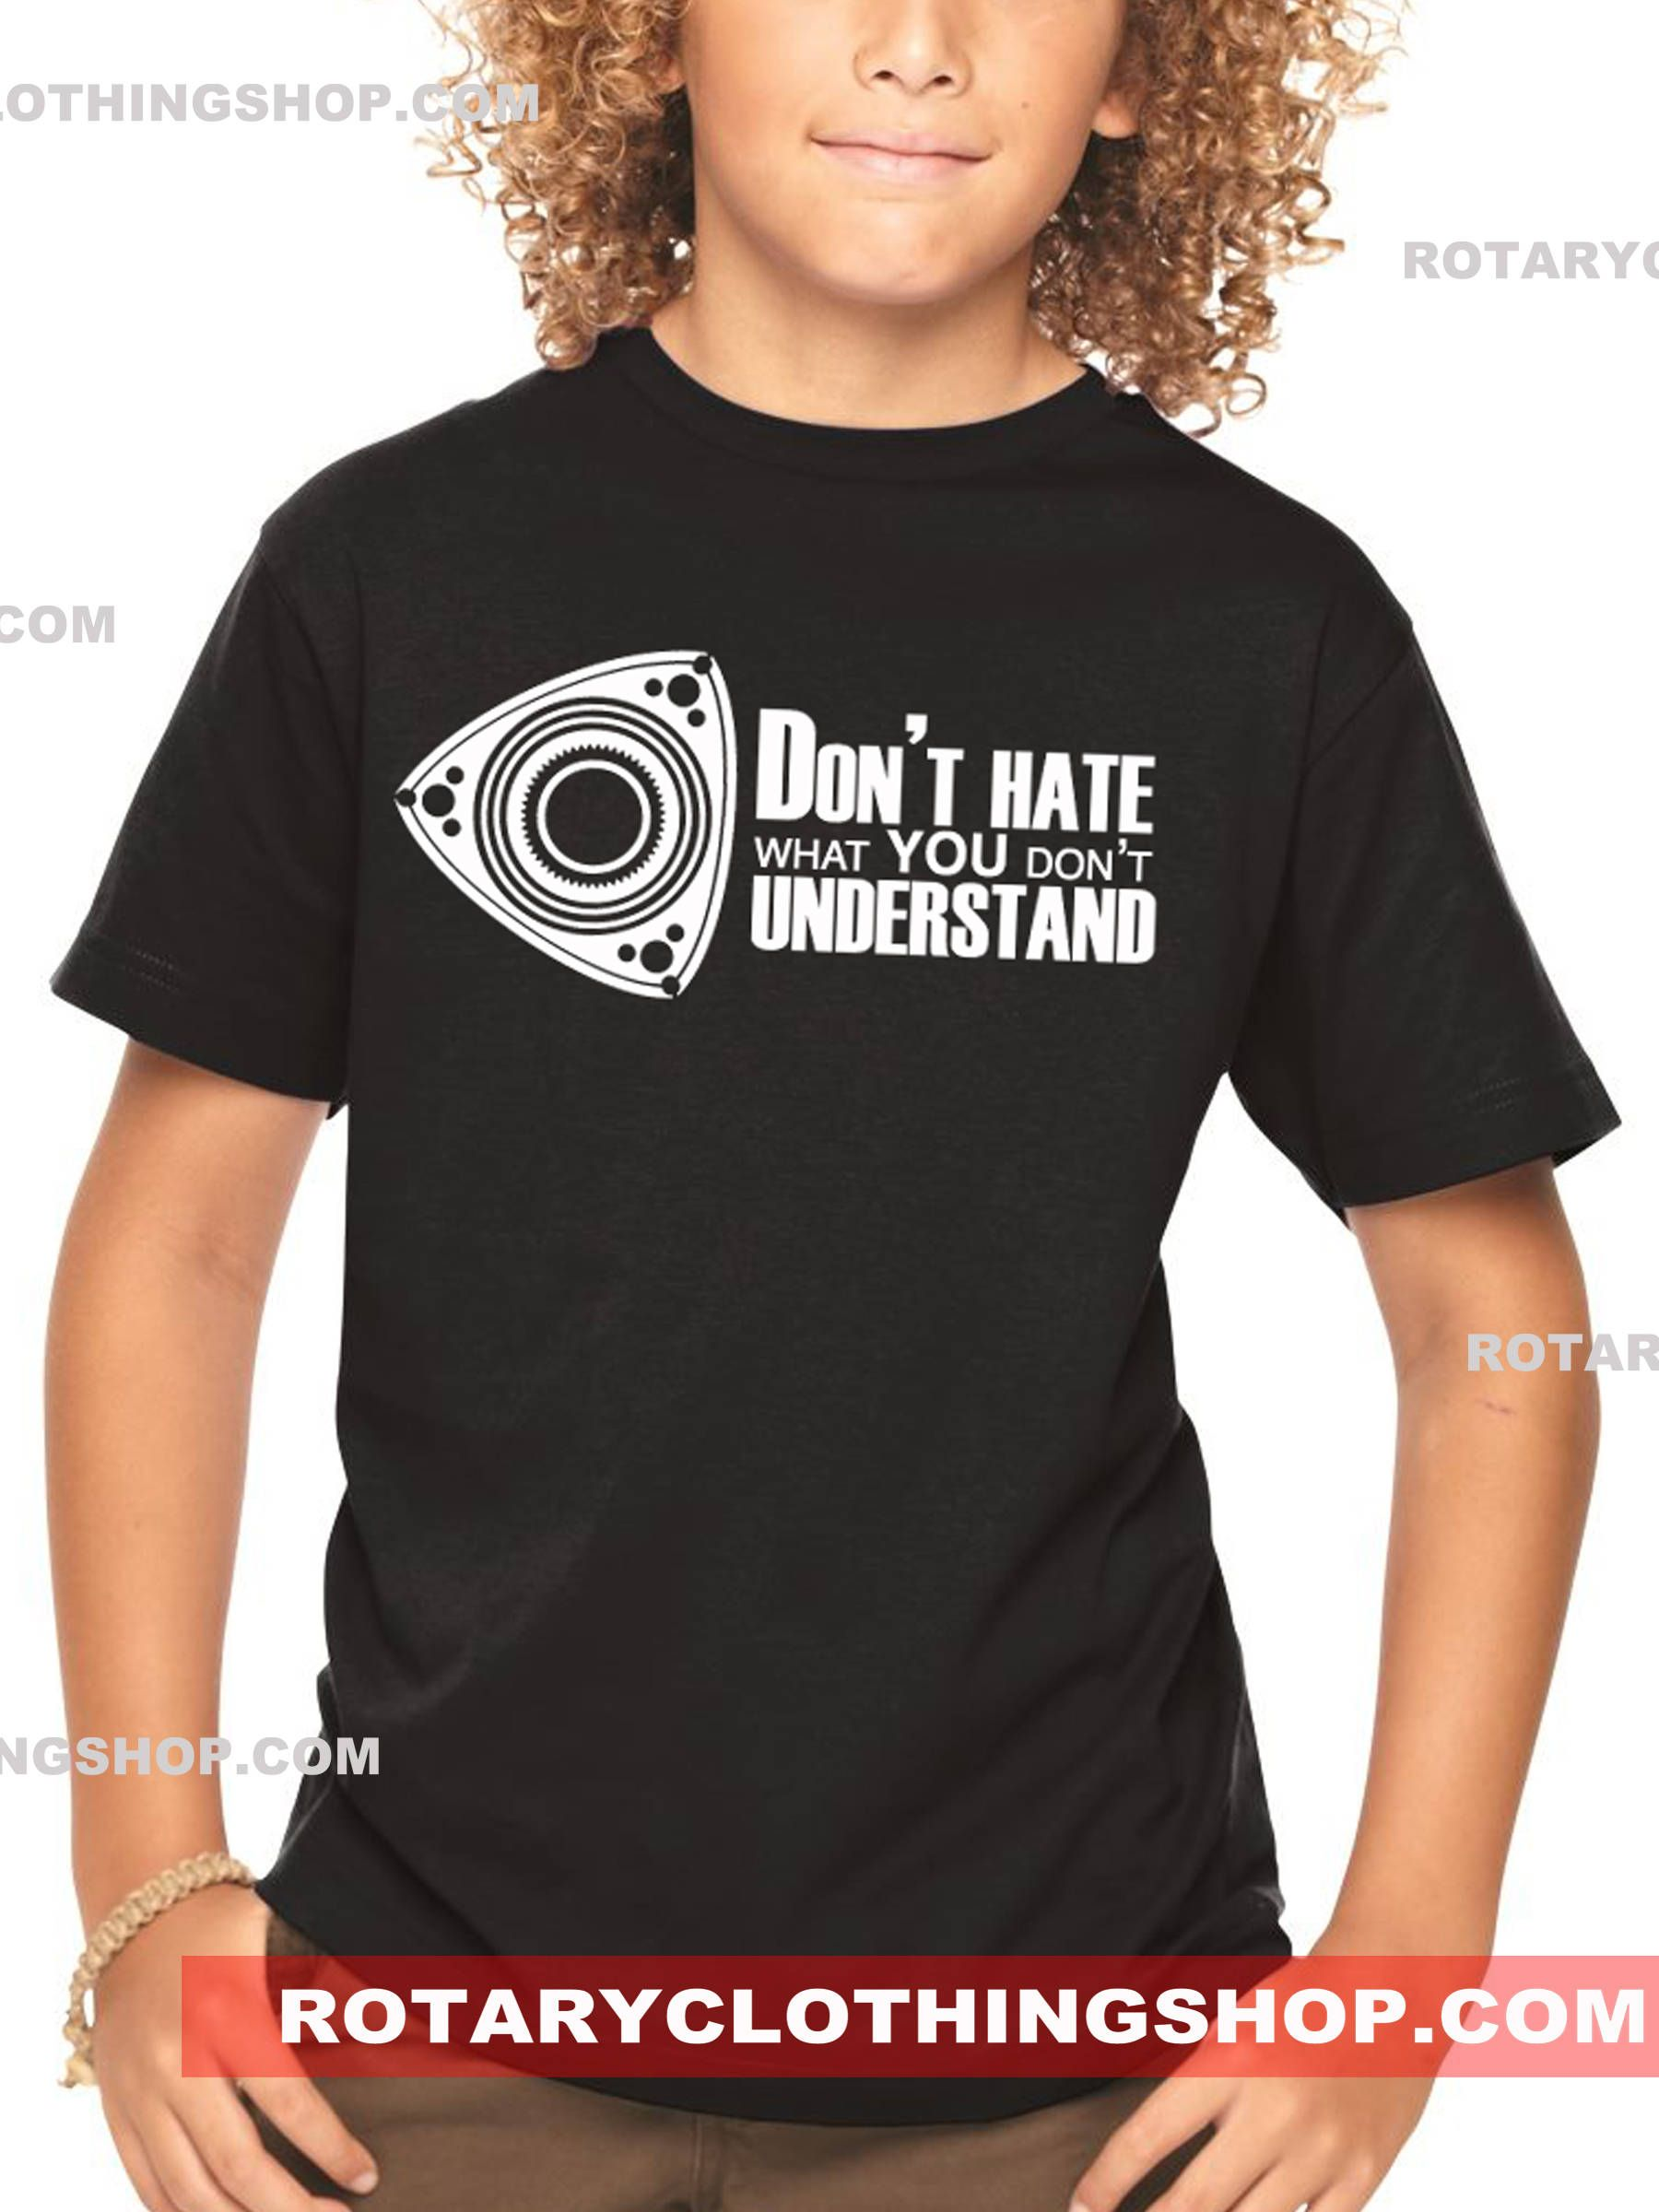 e5b5a9fc Dont Hate - Mazda Rotary - Wankel Tshirt - Boys Tee- Rx7 shirt - 12A - 13B  - Fc - Fd3s - Rx3 - Rx8 Tee by ROTARYCLOTHINGSHOP on Etsy